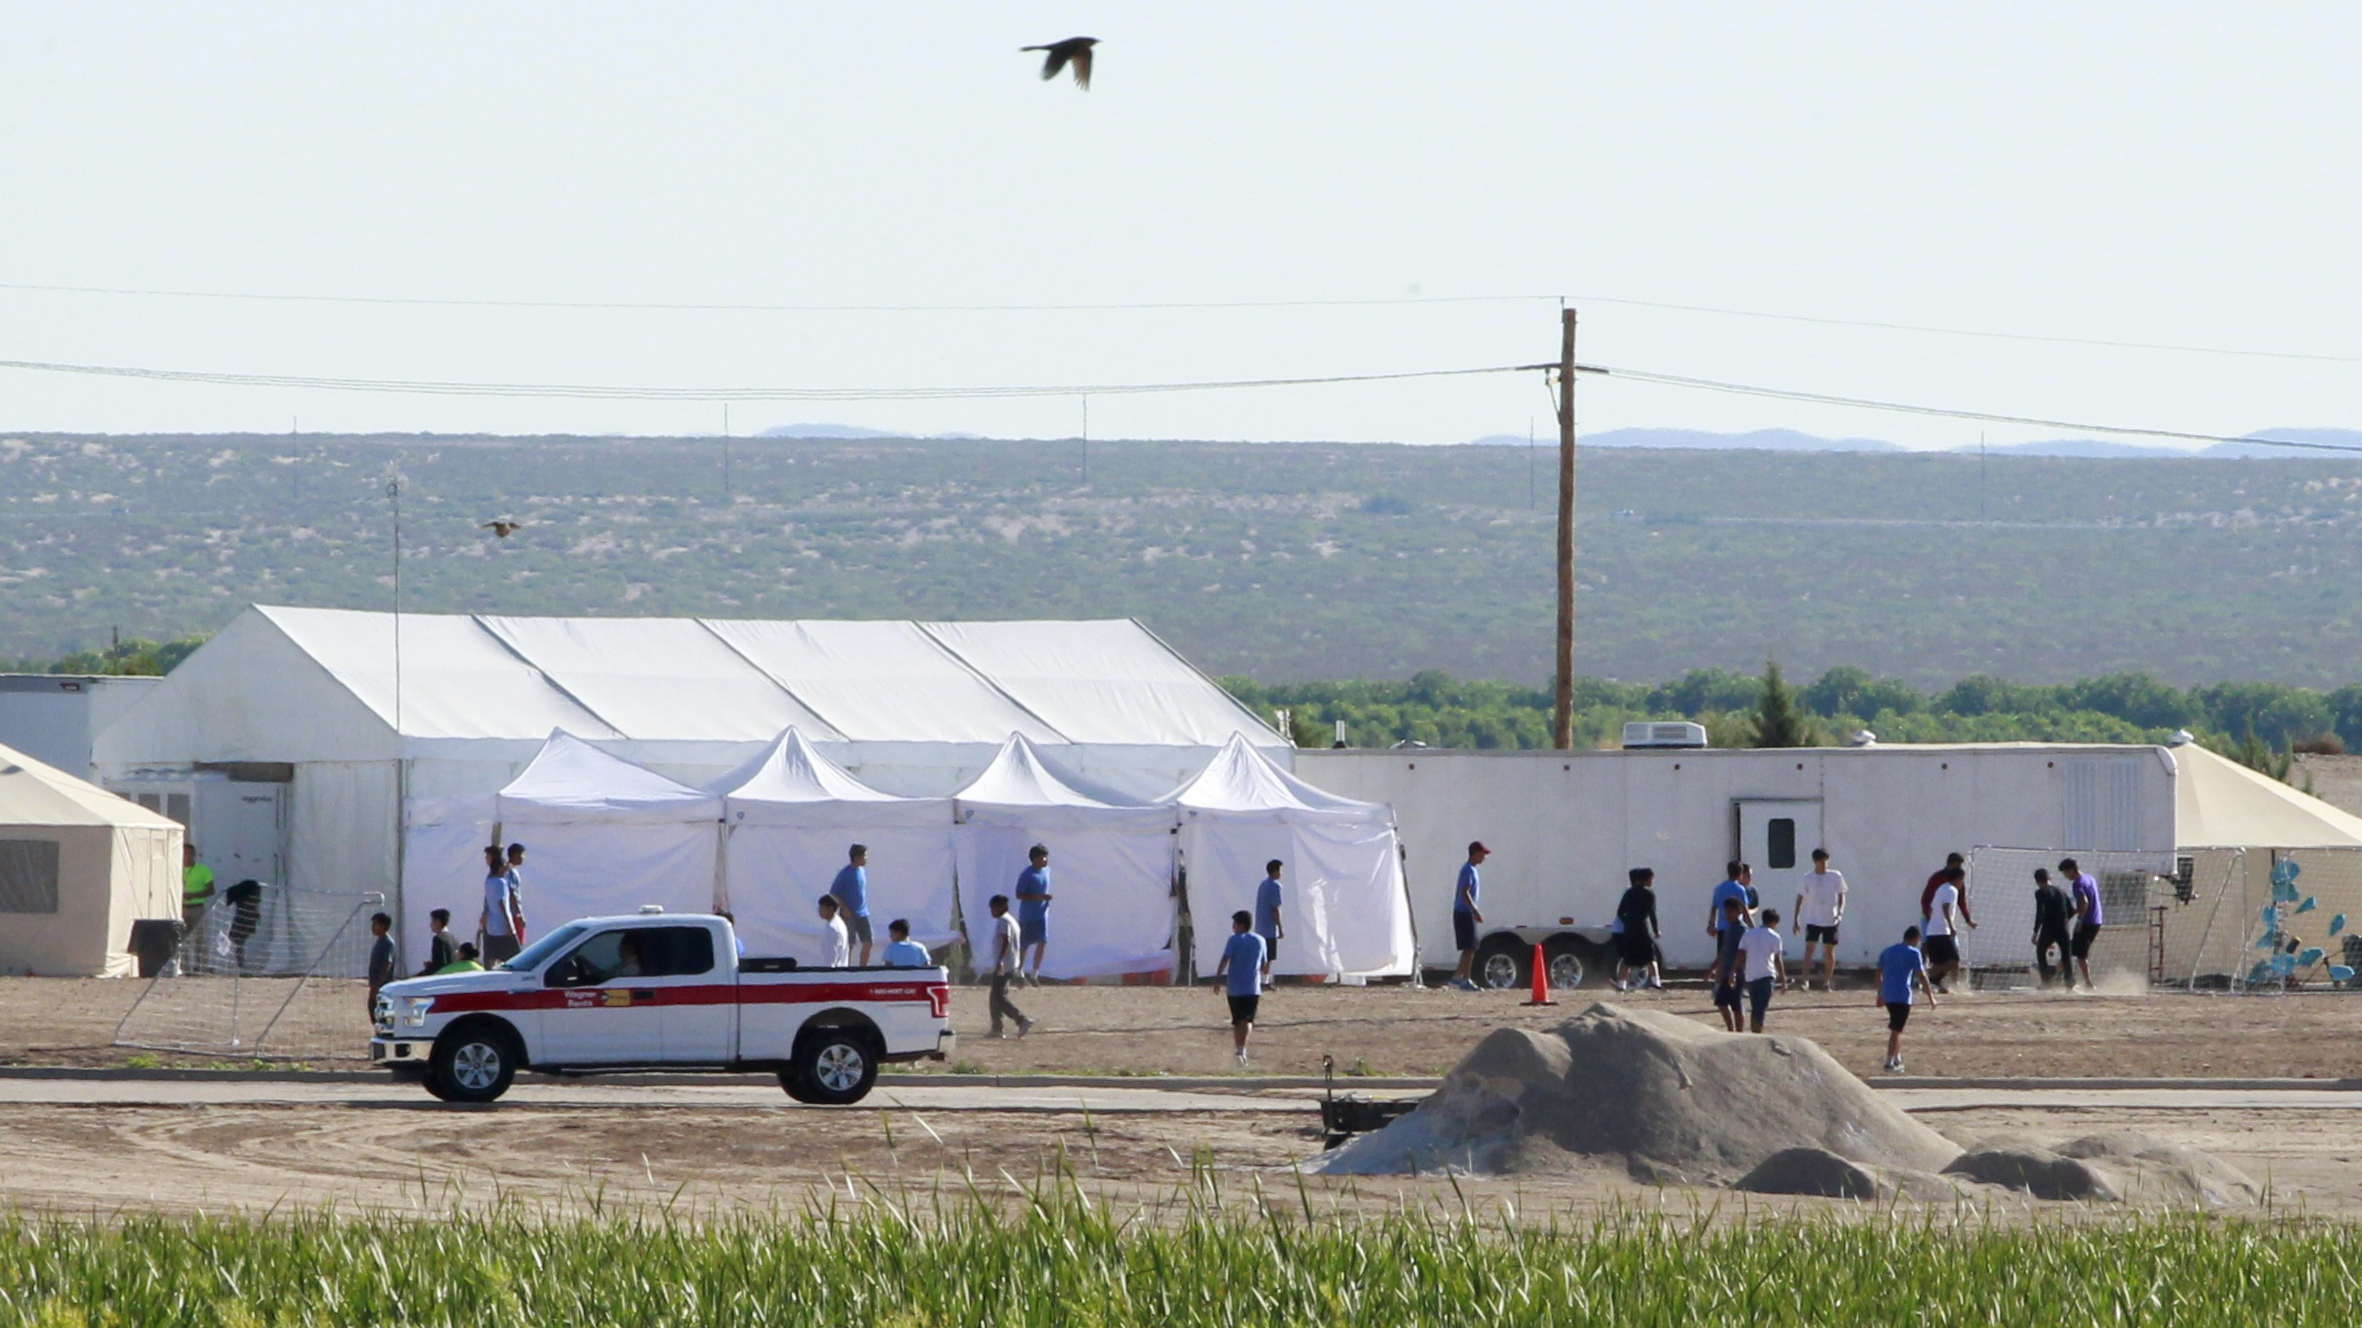 The Pentagon plans to build temporary camps for detained immigrants. Here, children of detained migrants are seen ata tent encampment near the U.S. Customs and Border Protection port of entry in Tornillo, Texas